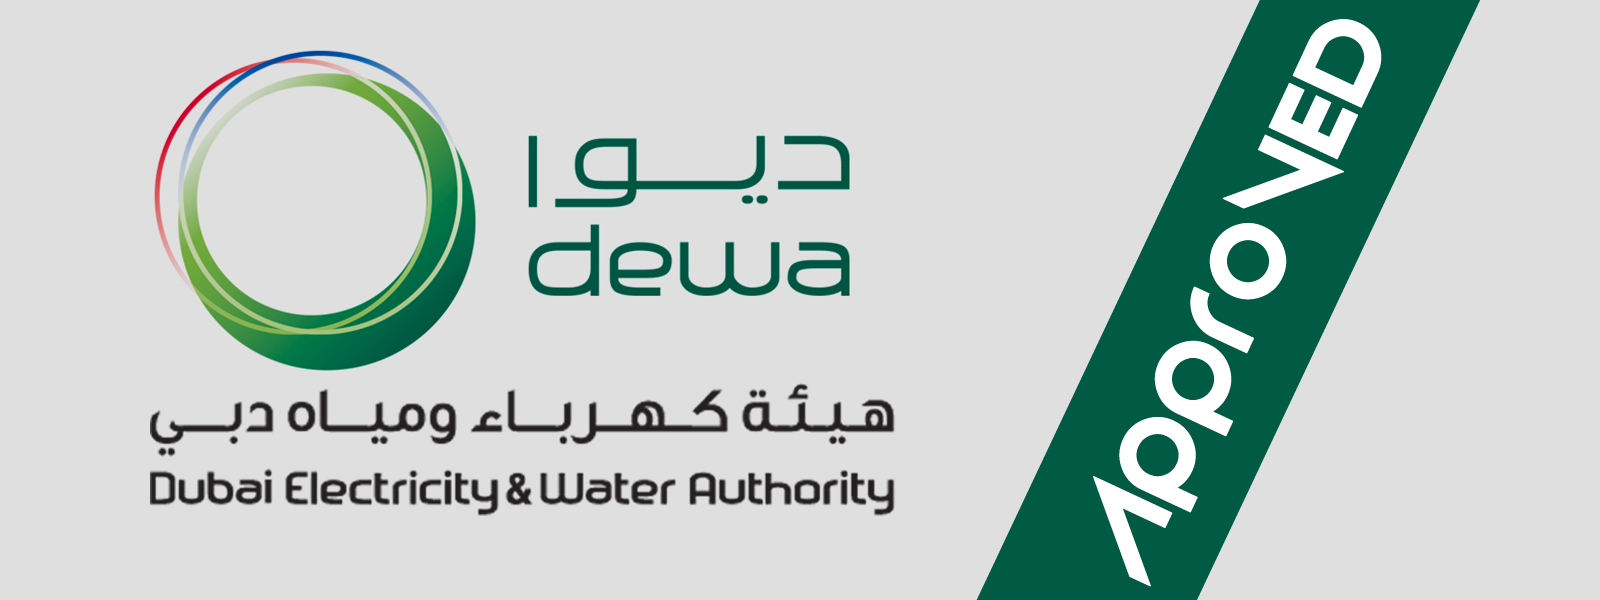 APPROVED BY DEWA